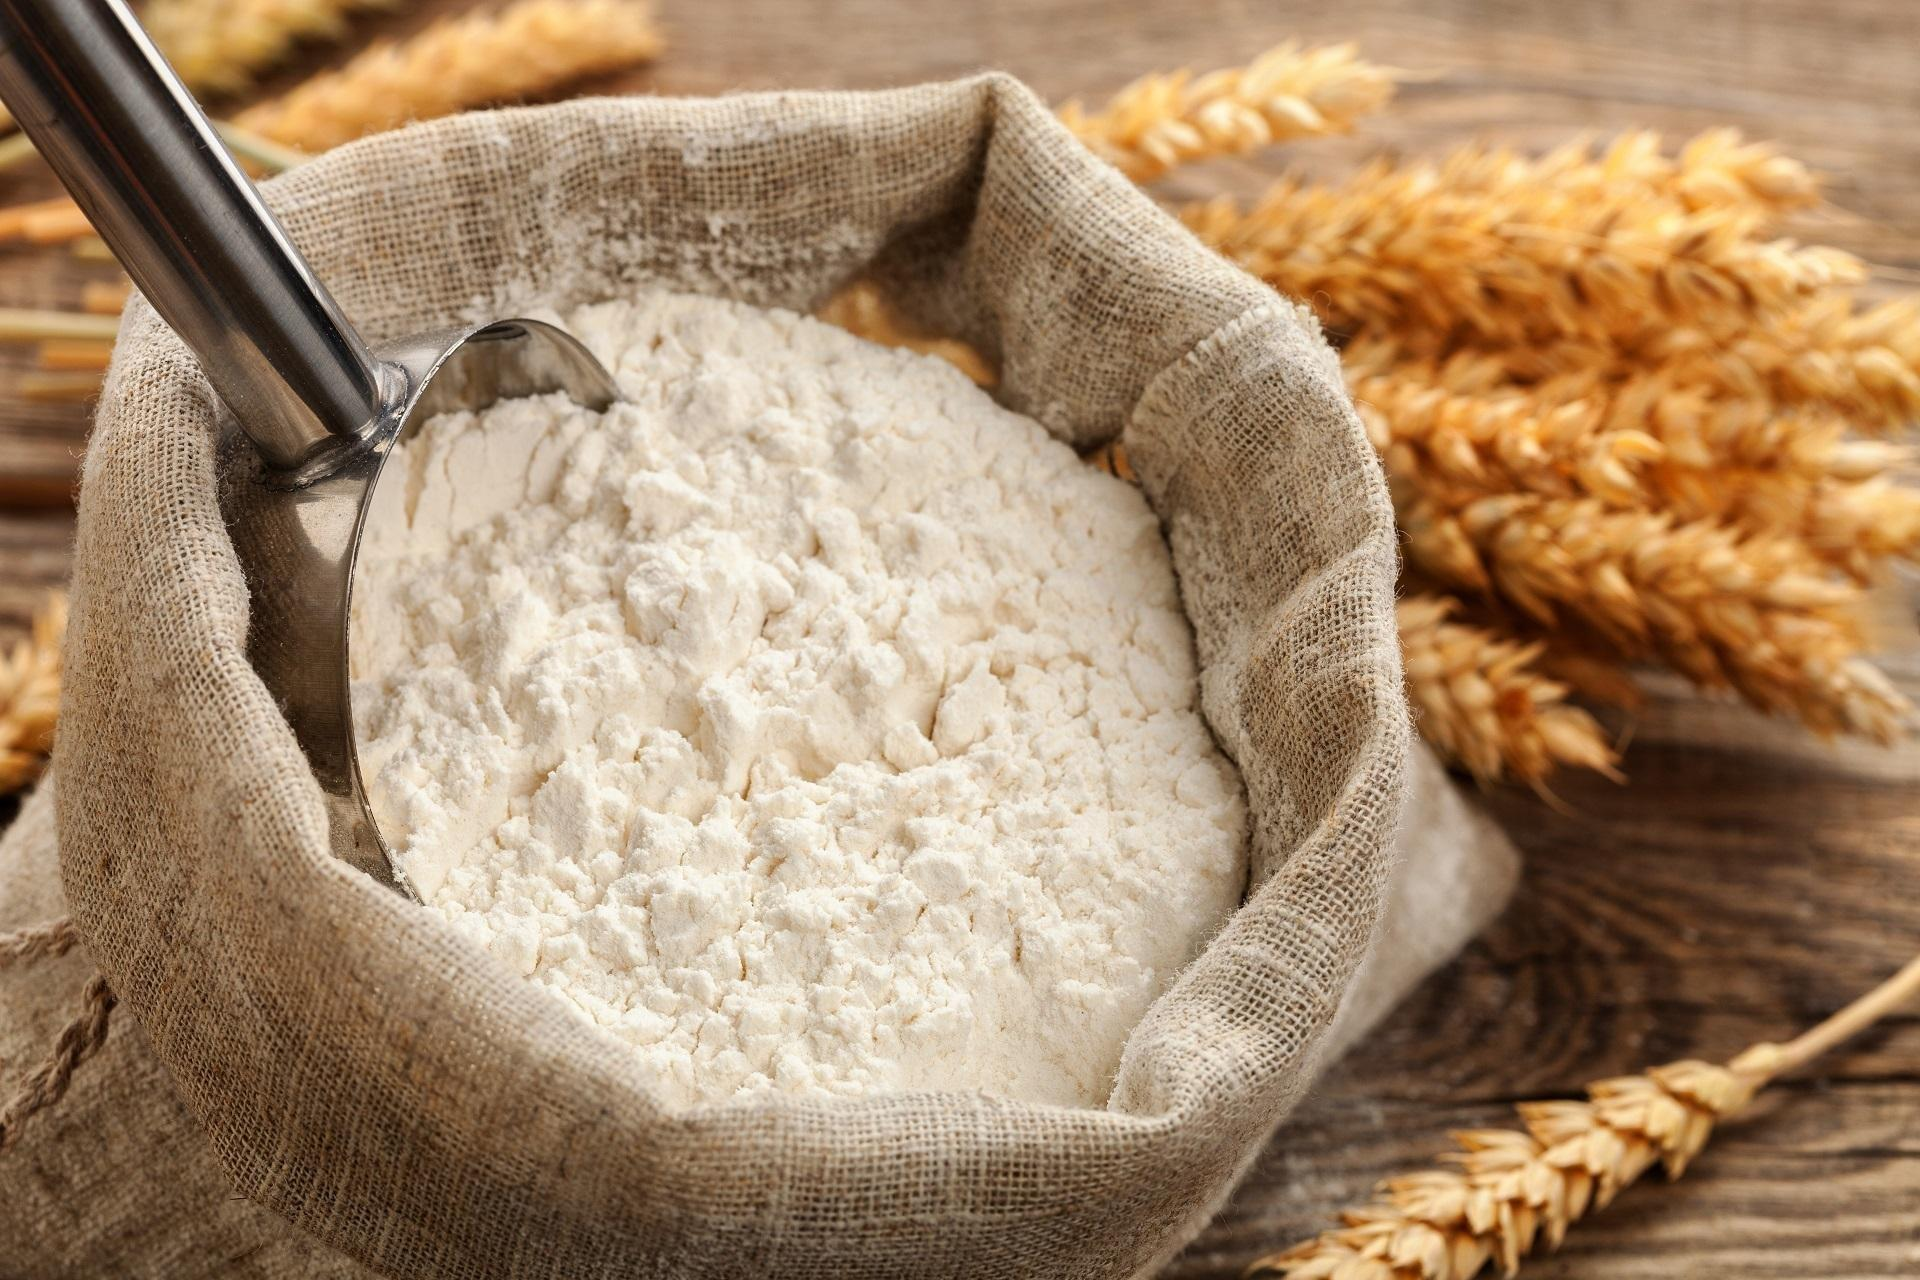 Add These To Your Atta (Flour) To Make It Diabetes-Friendly